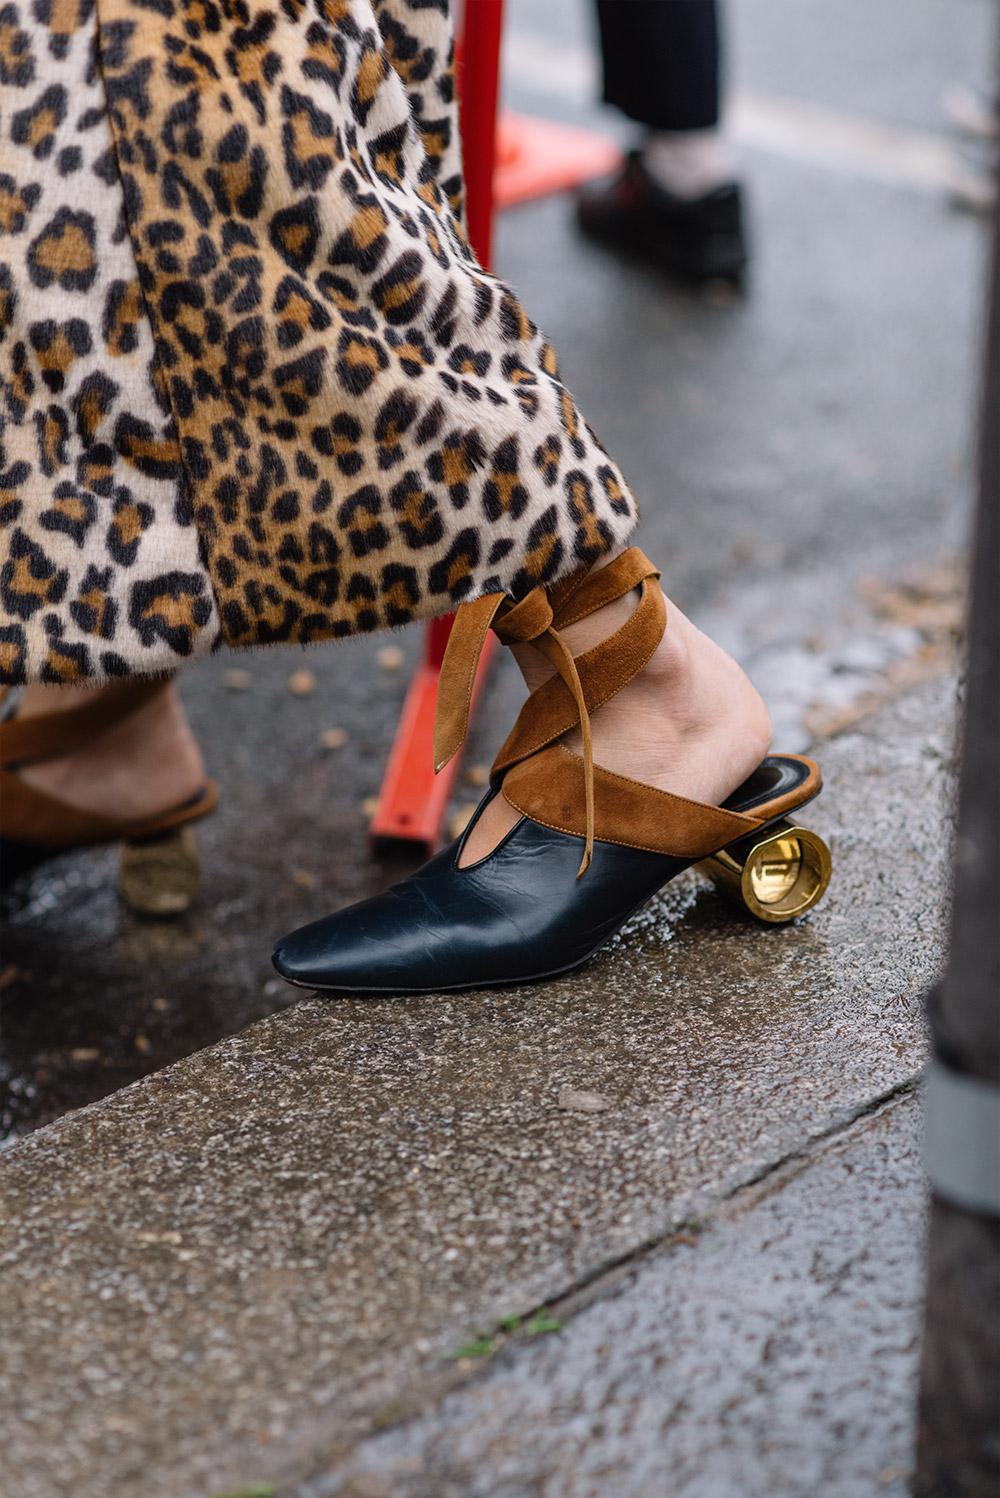 Streetstyle---Paris-Fashion-Week-Fall17-for-Glamour-Spain-by-The-Petticoat-Georgia Tal jw anderson shoes after Celine Show